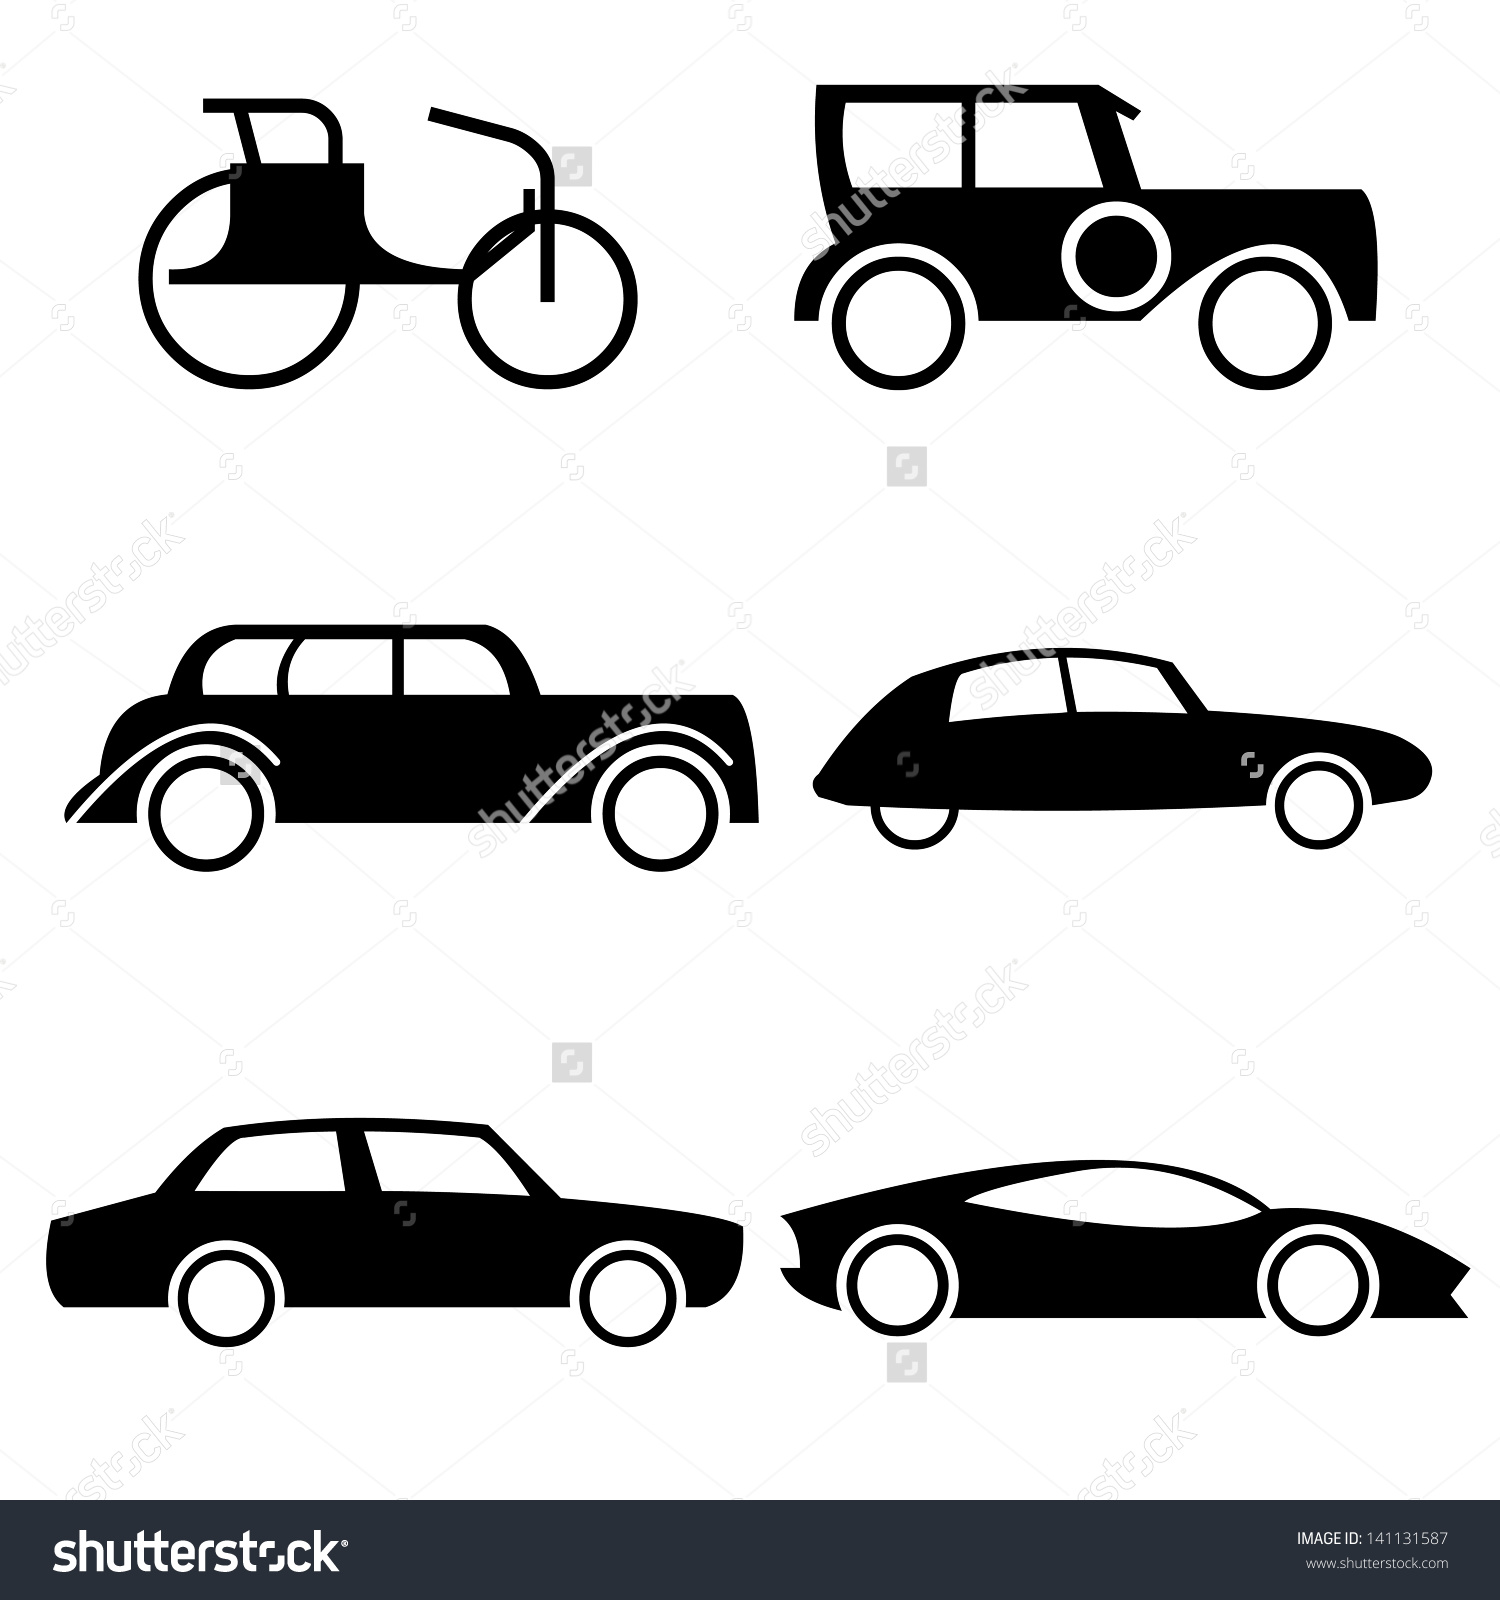 Icon Set Representing Evolution Cars Through Stock Vector.